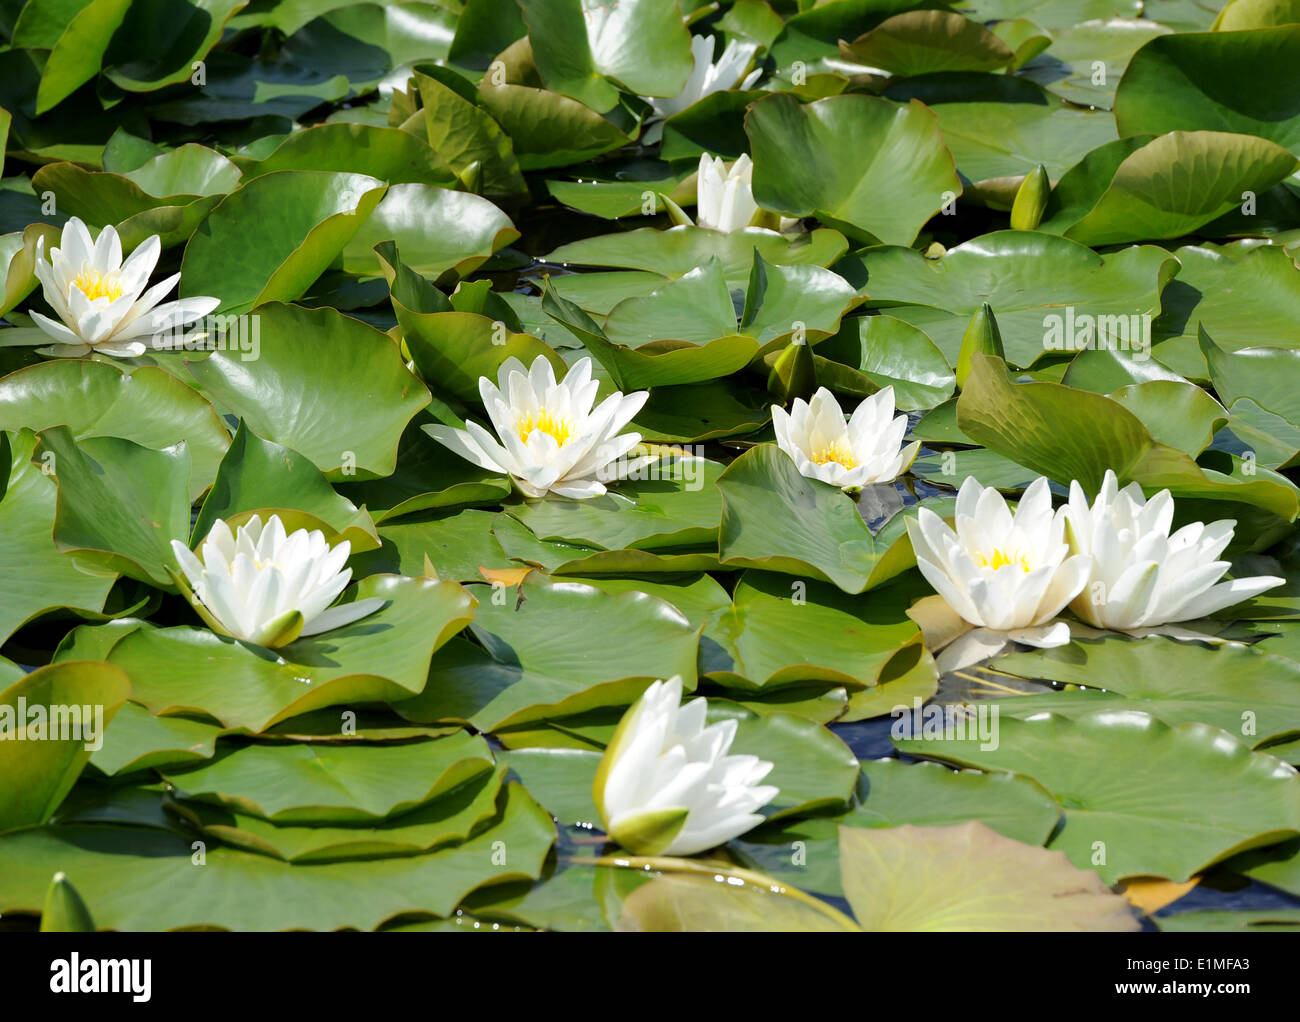 Vivid White Water Lilies Blossom On A Pond Arrangement In Stock